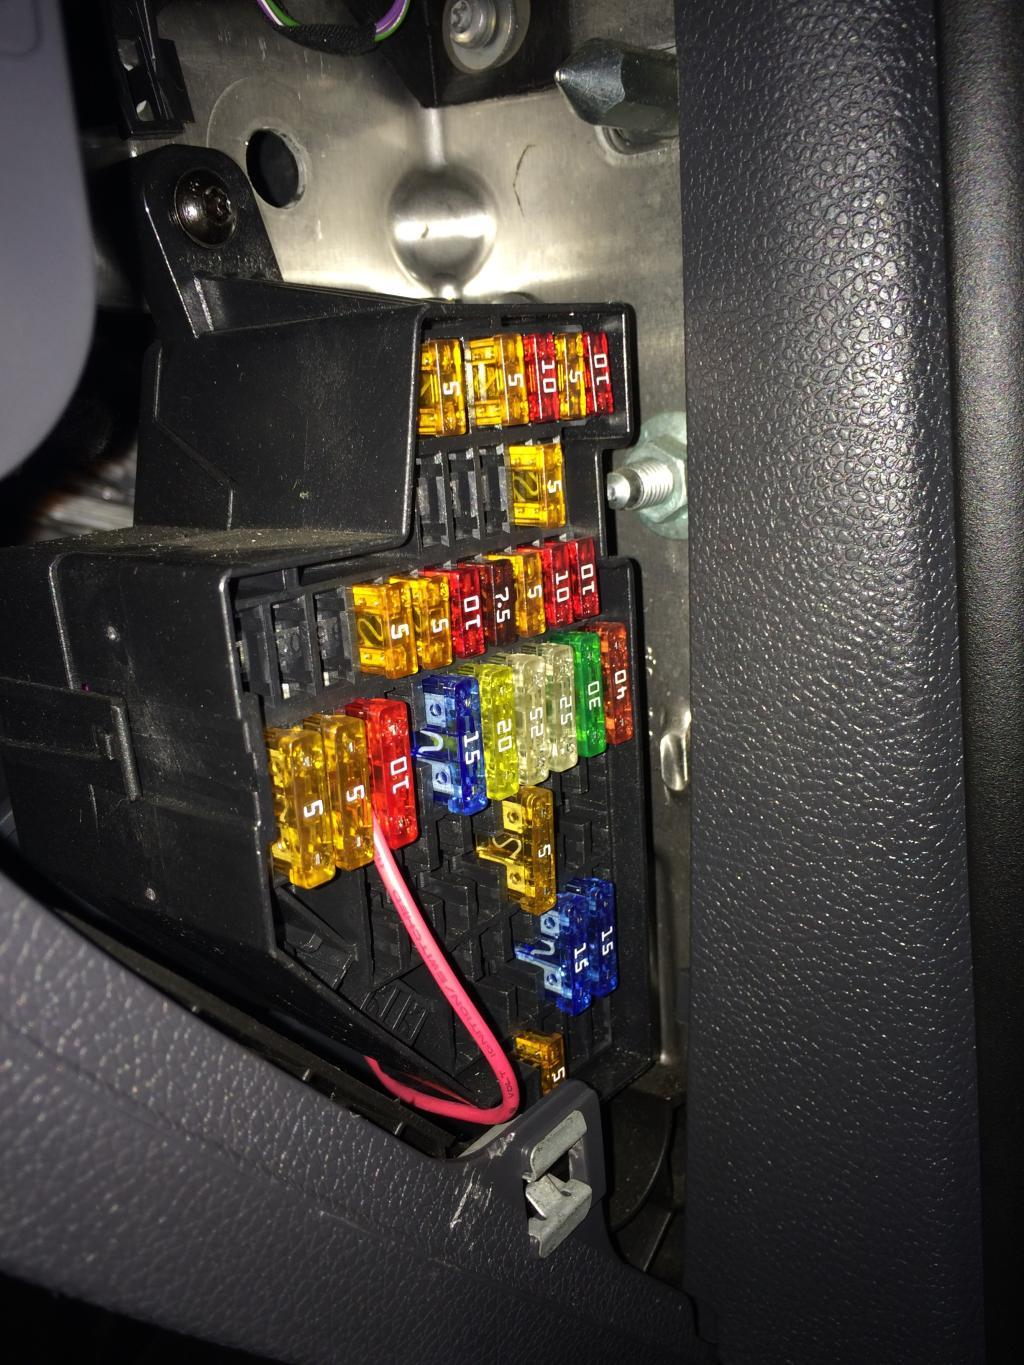 2005 Gti 2 0 Turbo Dsg - Fuse Box Pictures - Sat Nav And Car Audio